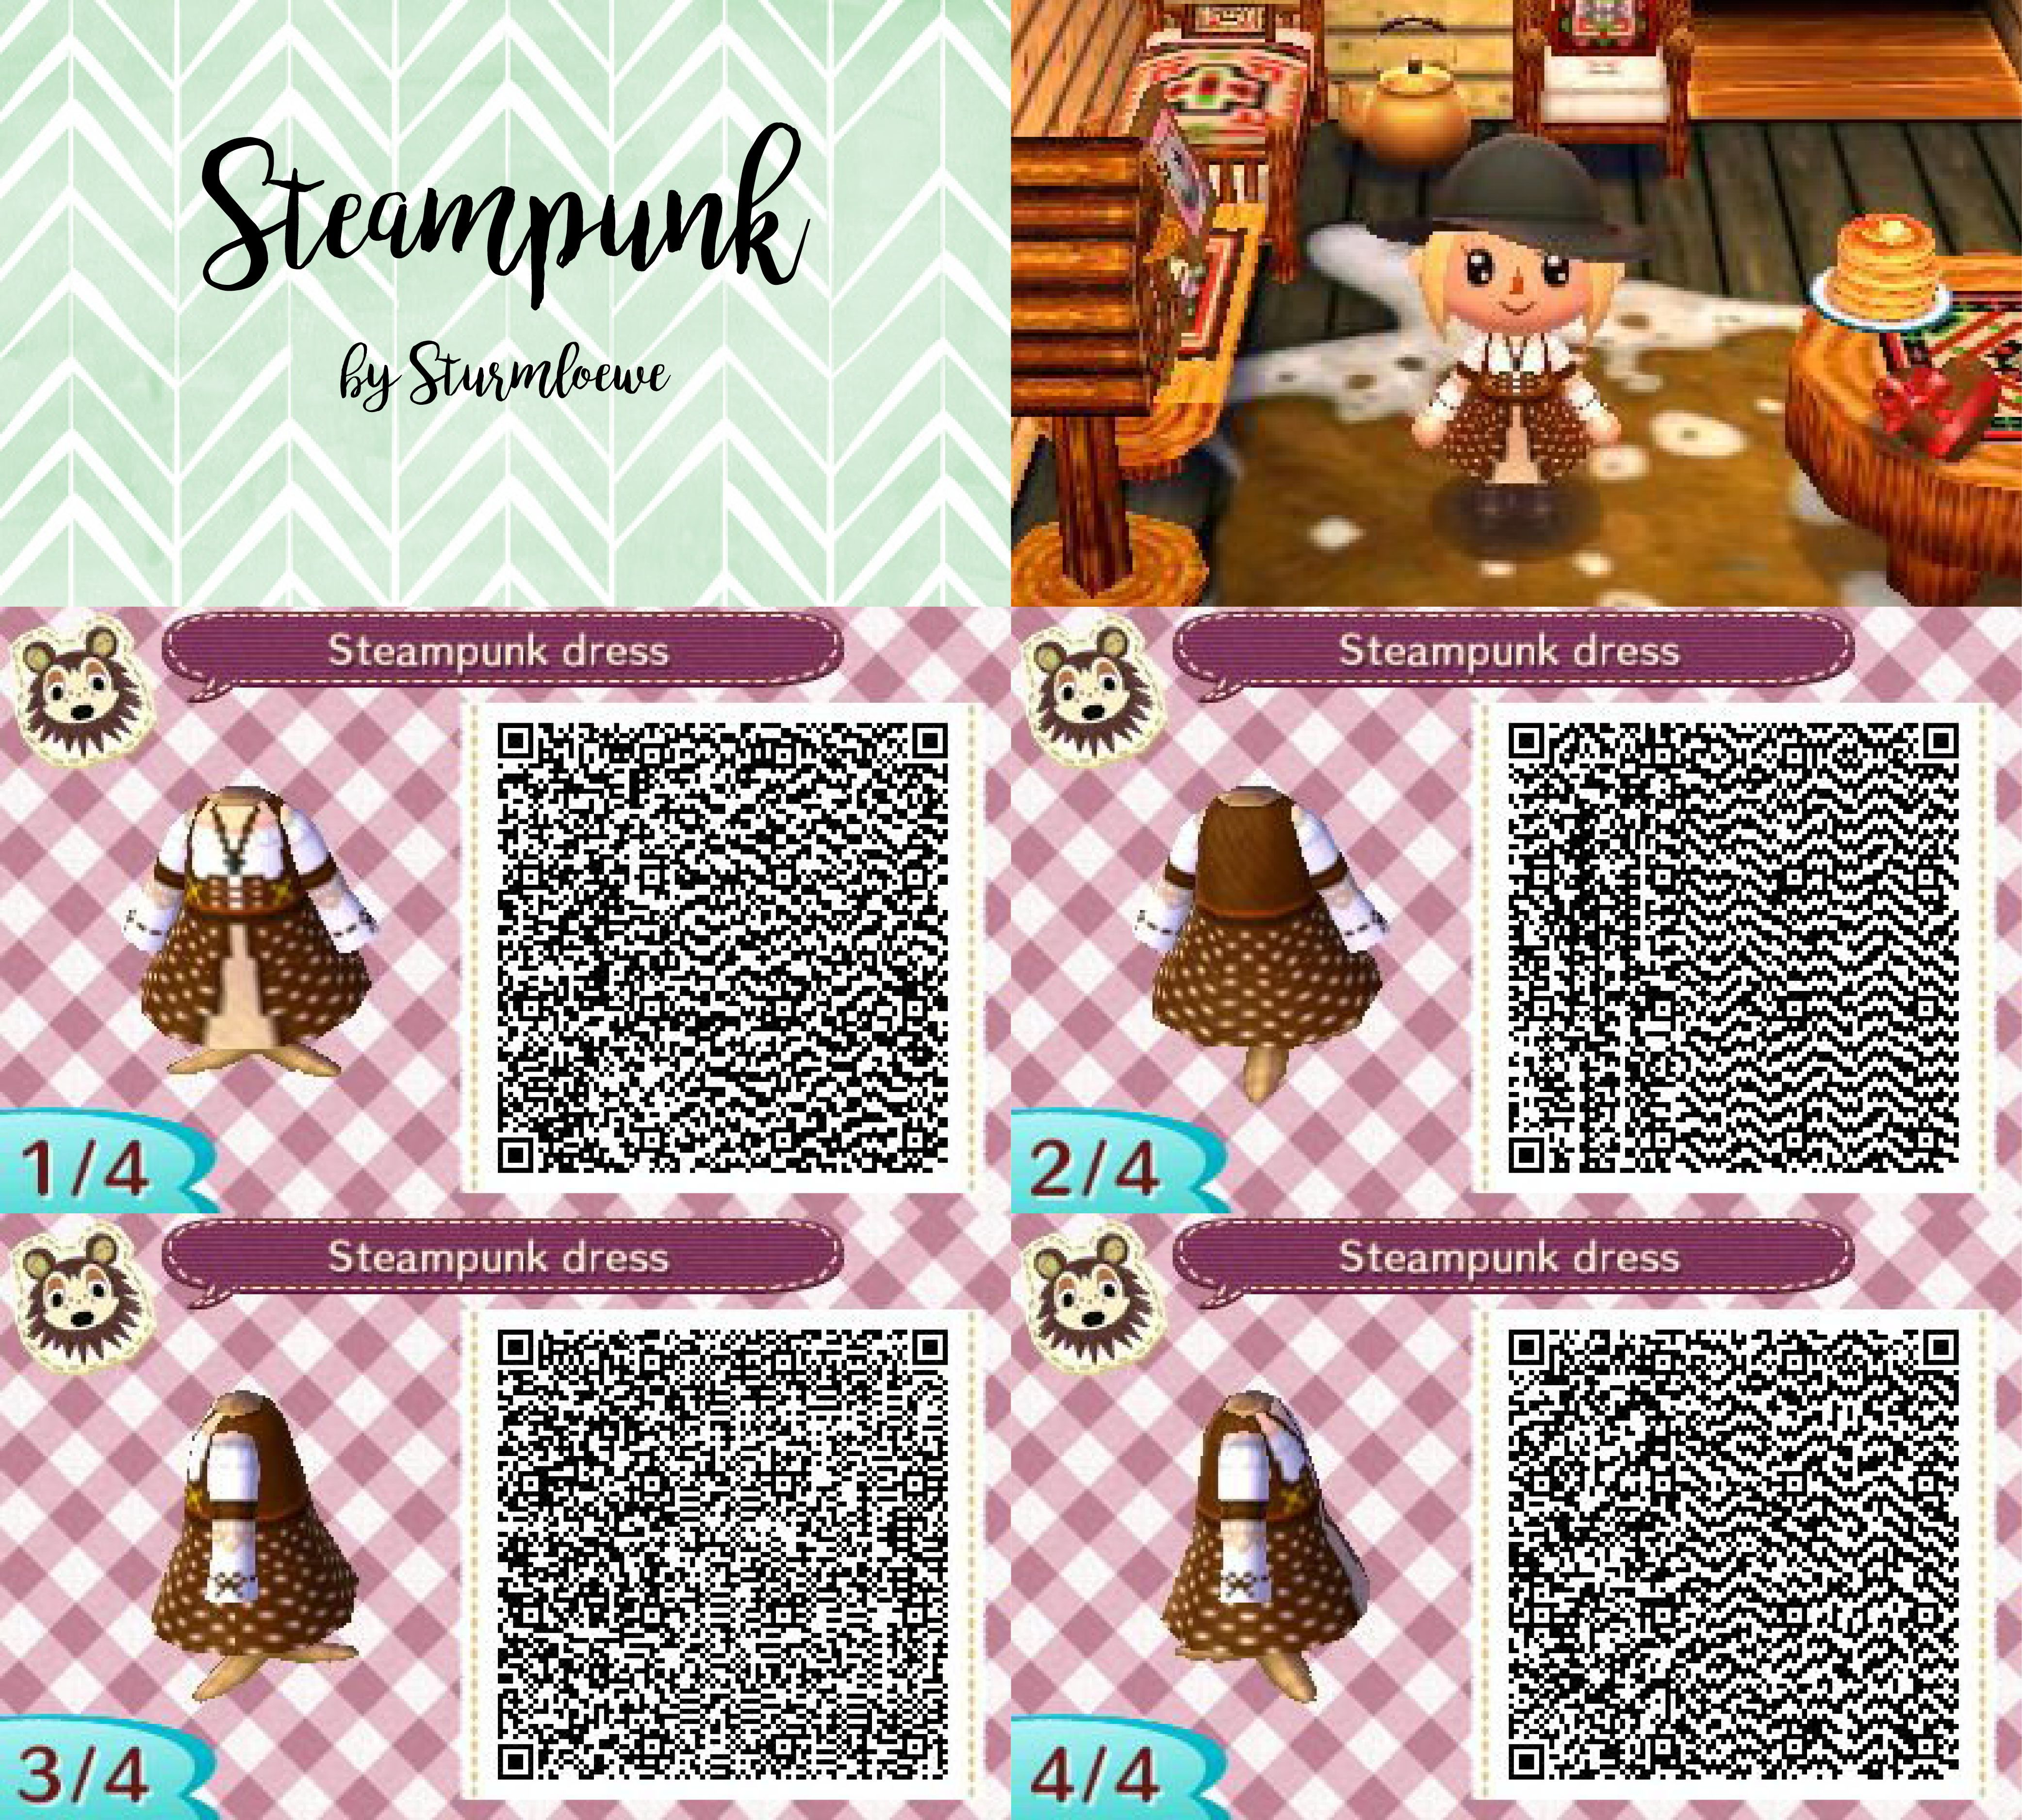 Steampunk Dress Qr Code For Animal Crossing New Leaf With